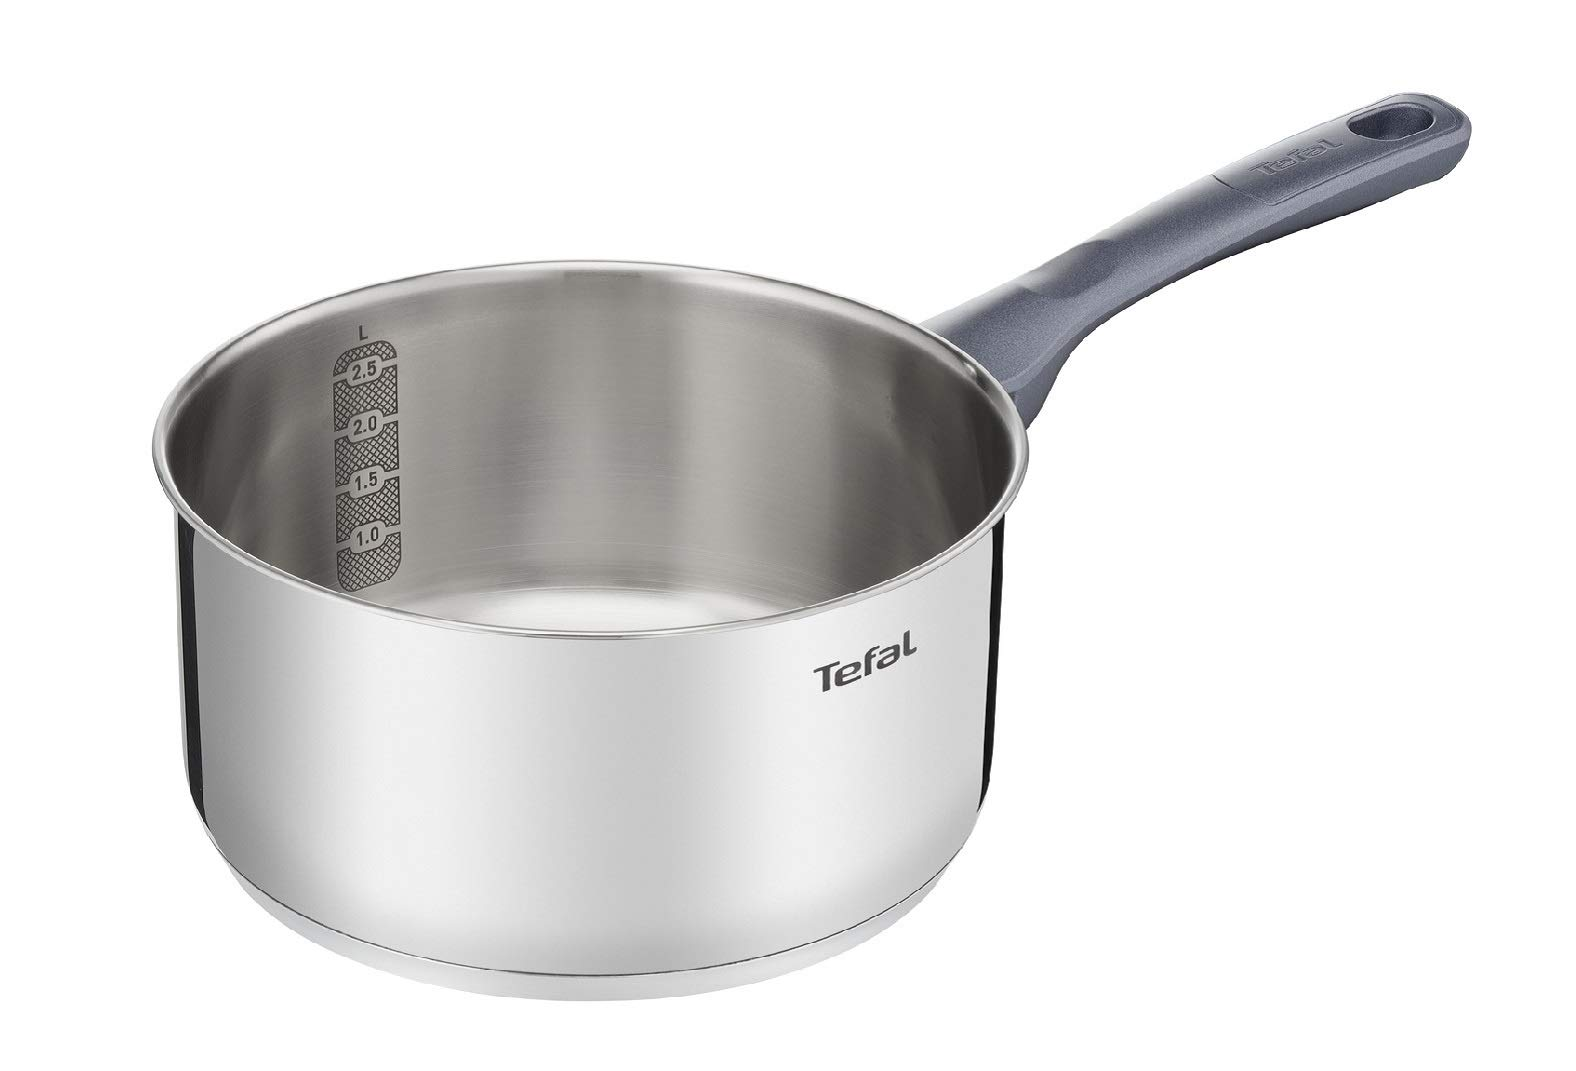 Tefal Daily Cook - Cazo de Acero Inoxidable de 16 cm,1 Litro, Base